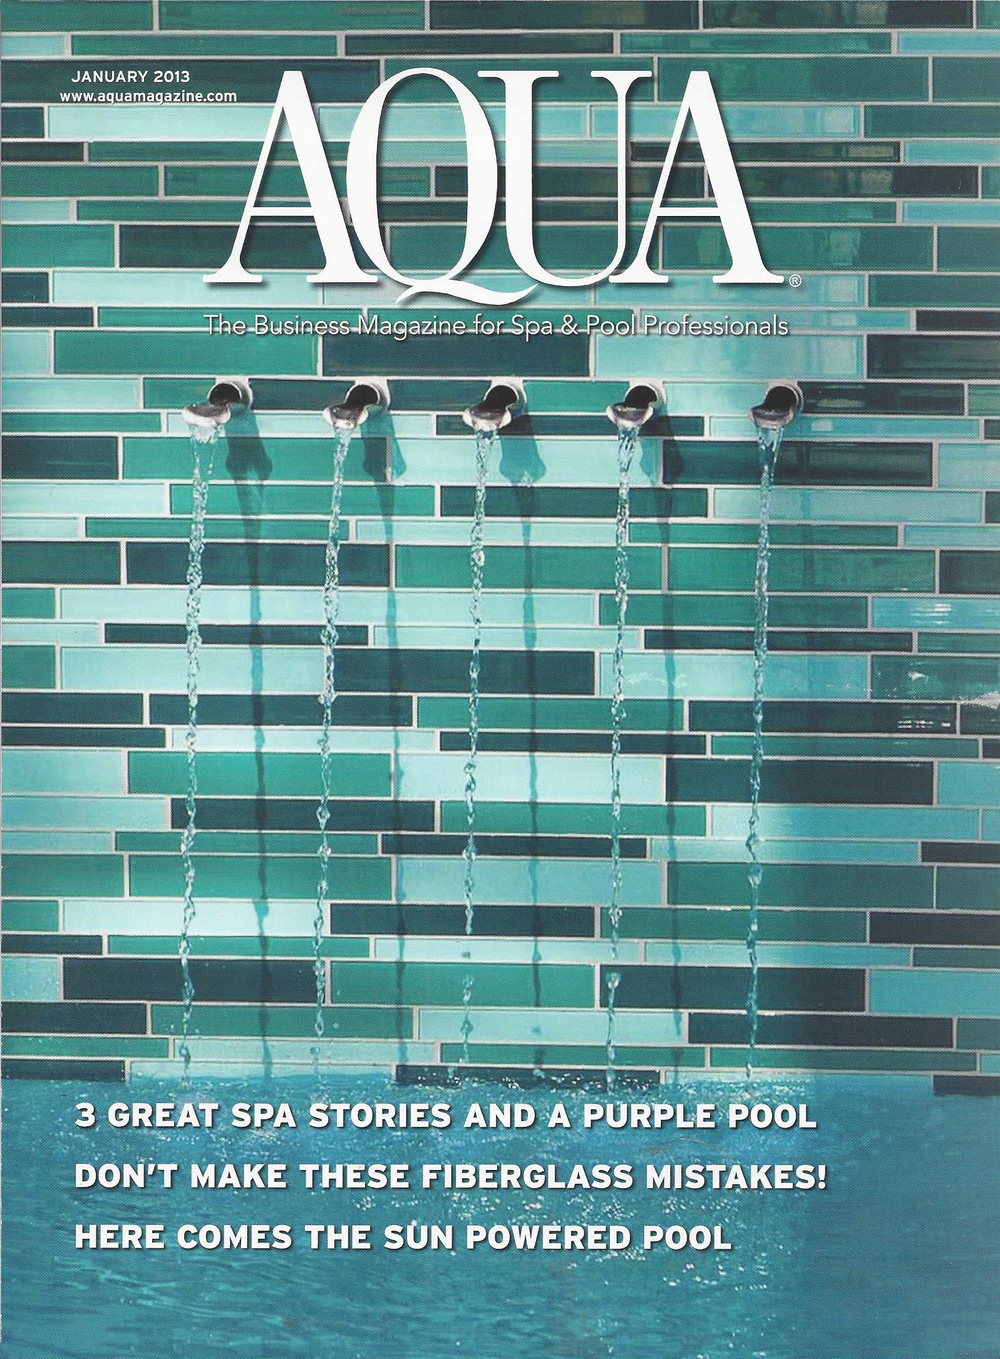 Aqua-Magazine-Jan-2013-cover.jpg